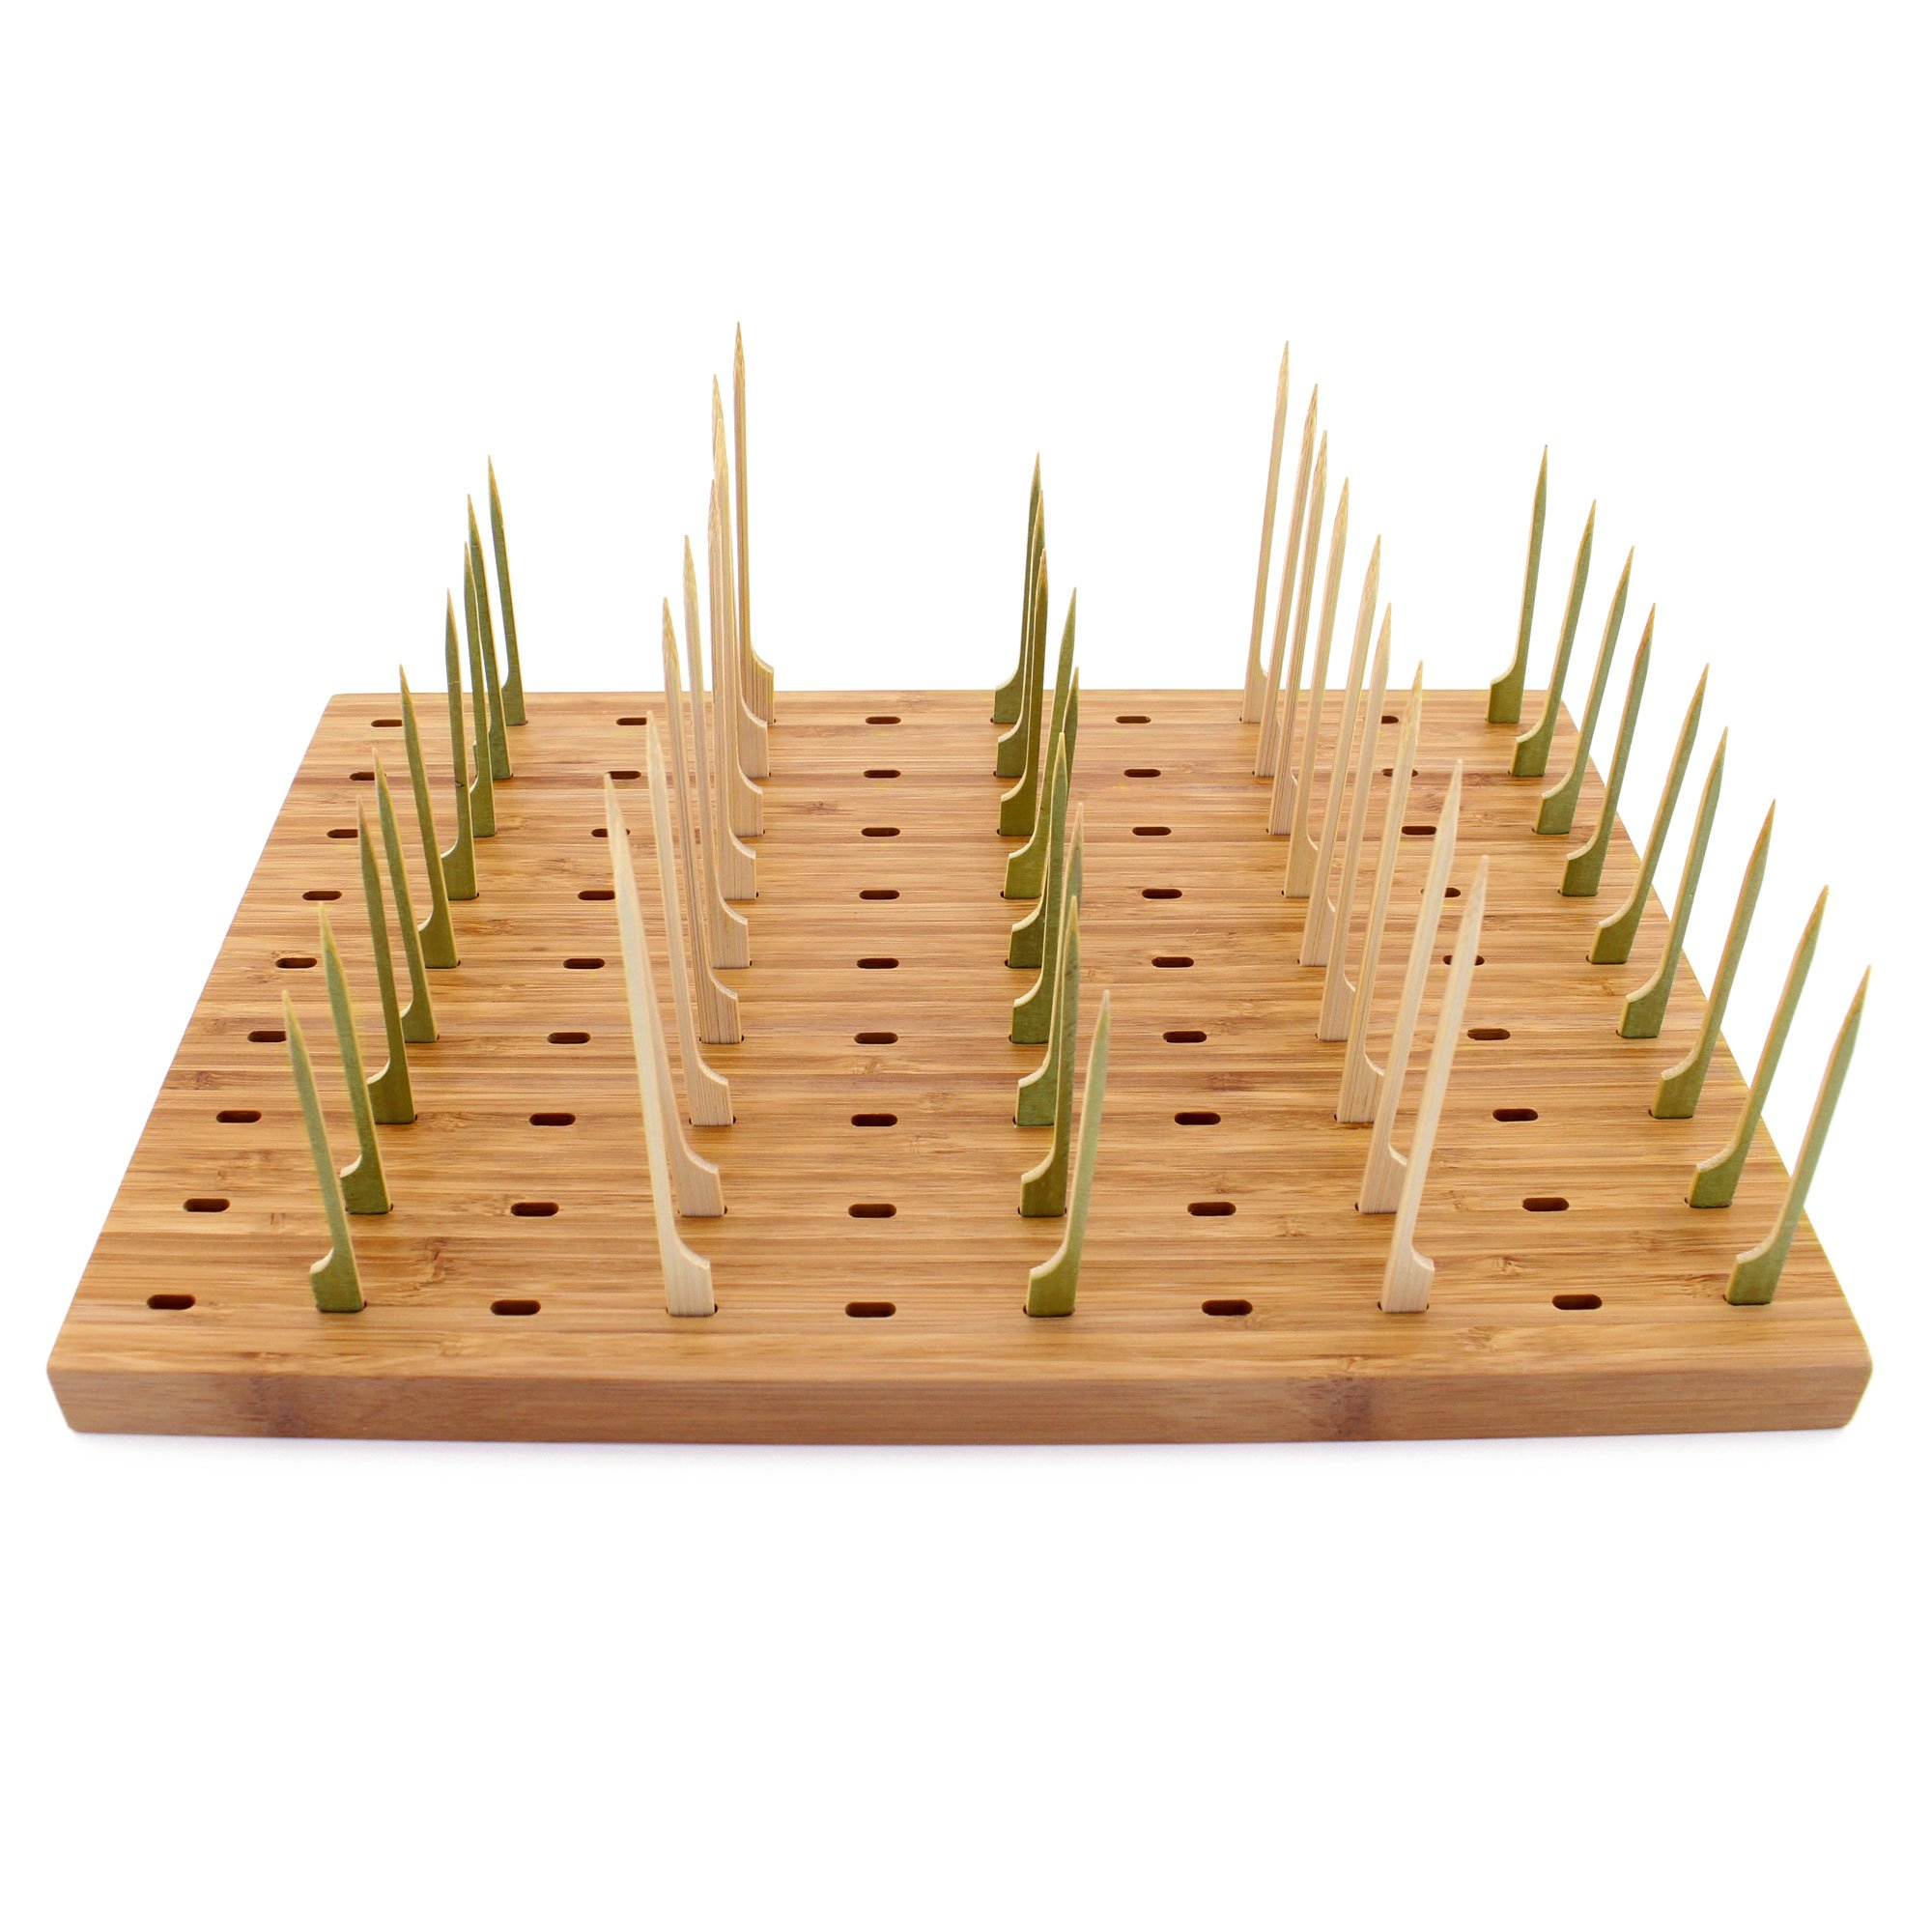 BambooMN 14''x9.8'' Bamboo Paddle Skewers Holder Food Display Stand w/90 Holes, Perfect for Catered Events, Restaurants, Cocktail Party Supplies - 1 Piece